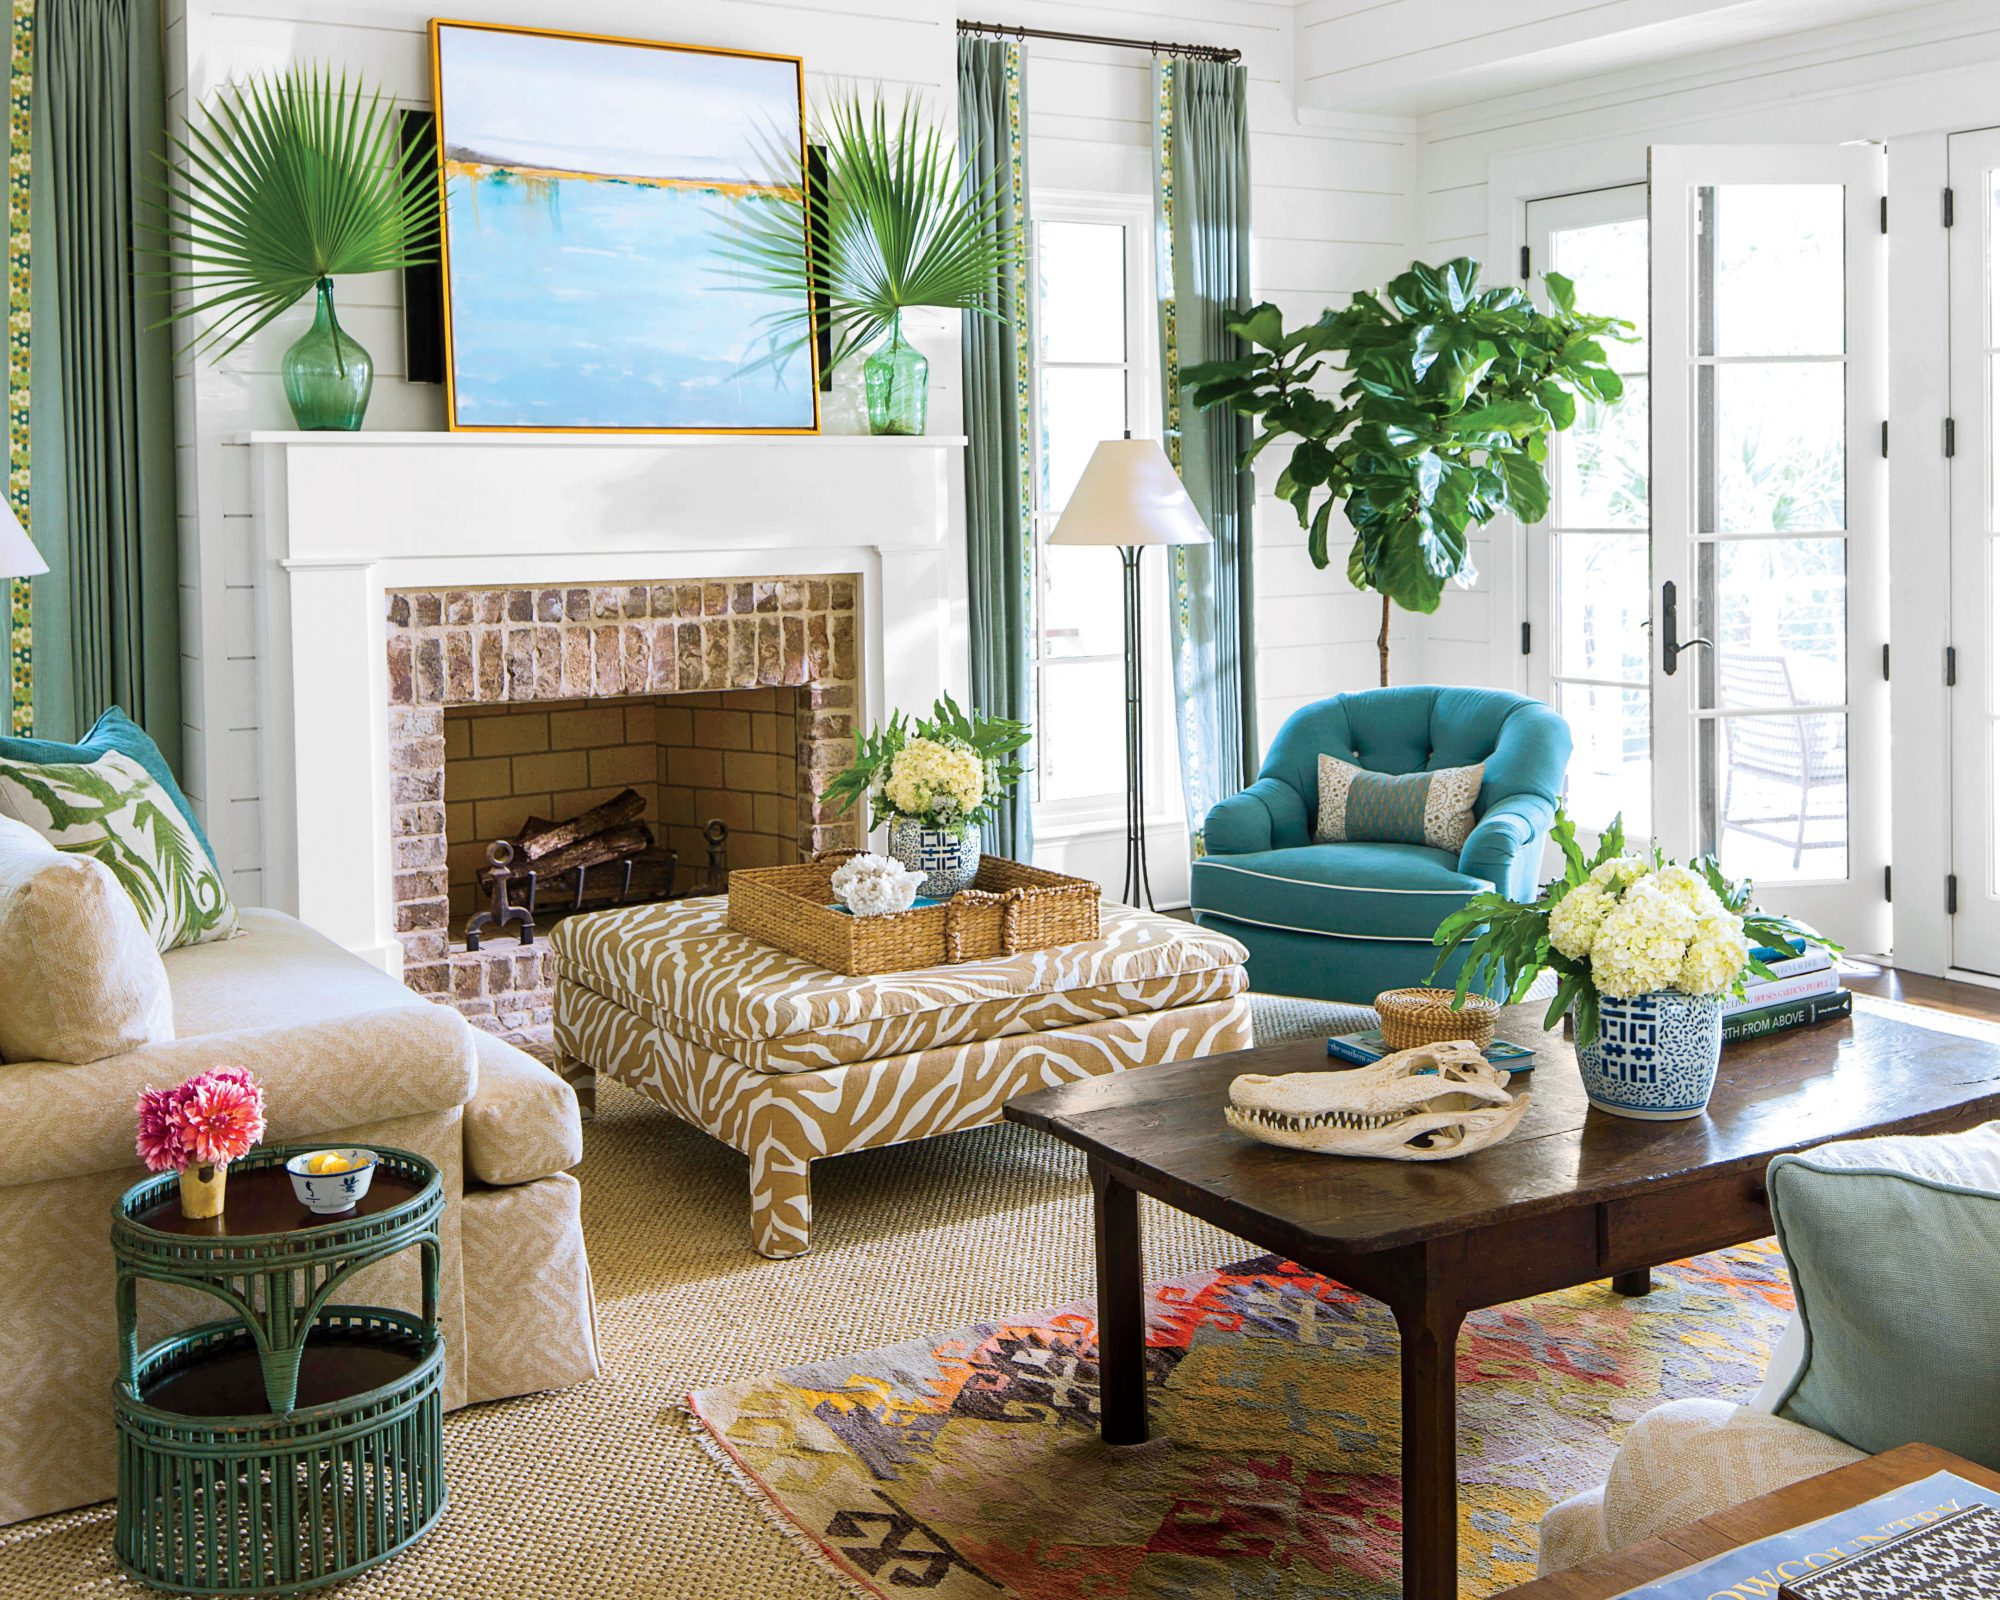 Decorate Living Room 106 living room decorating ideas - southern living